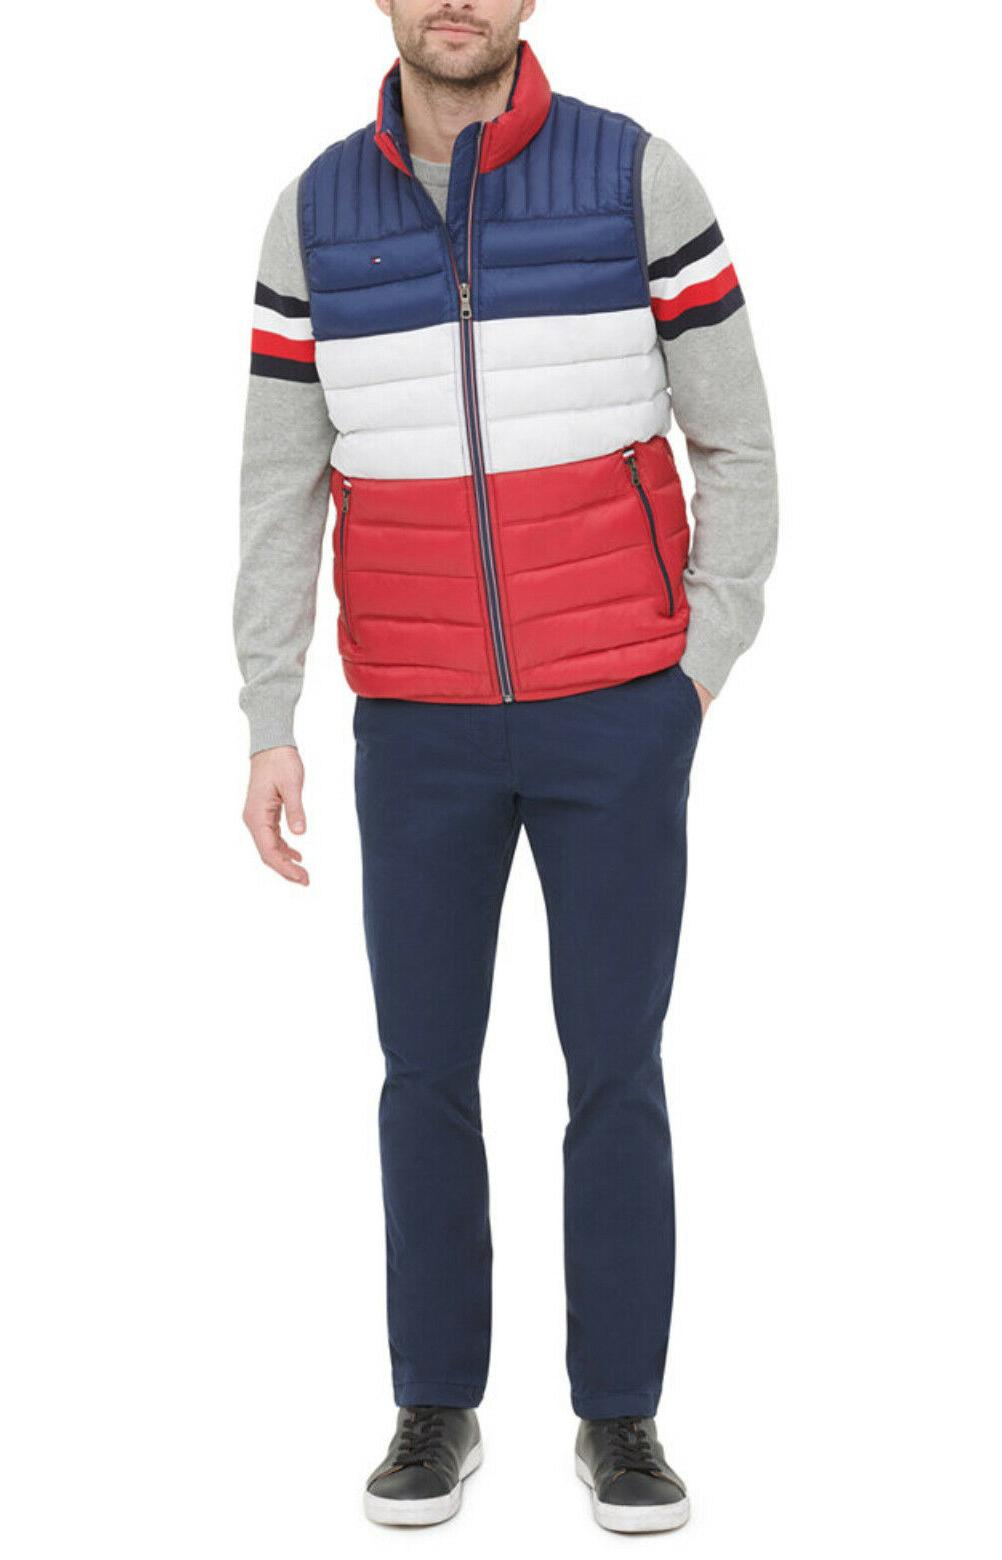 Tommy Hilfiger Red White Striped Quilted Puffer Vest $150